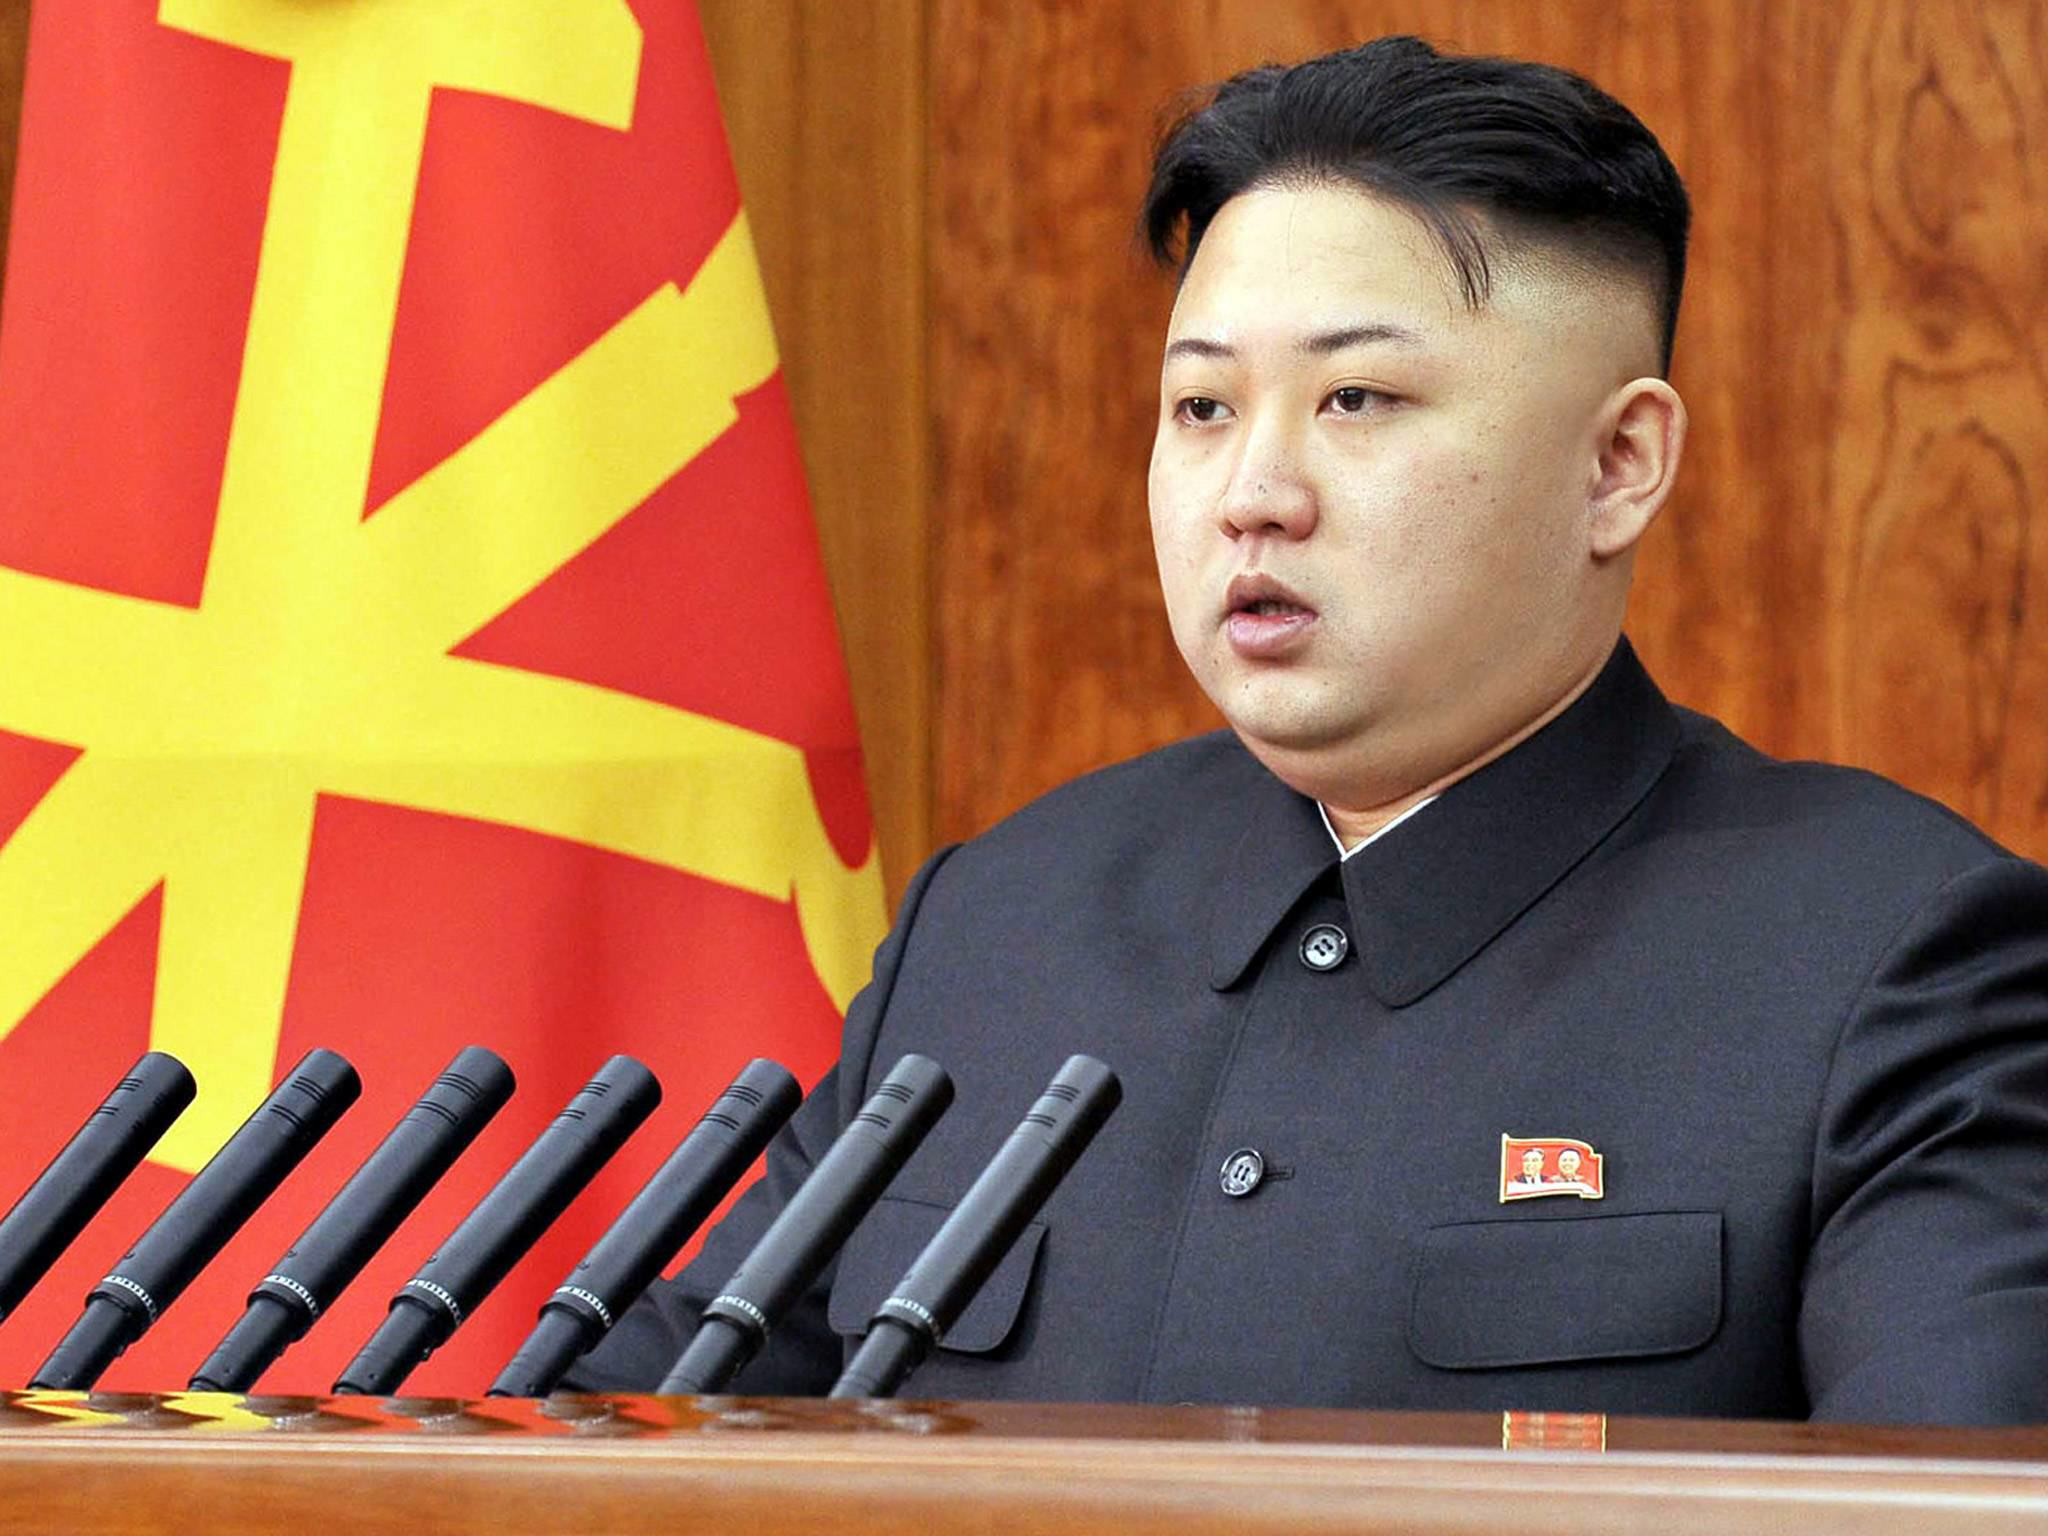 UNILAD pg 28 kim jong un getty28 Kim Jong un Believed To Have Had His Vice Premier Shot By Firing Squad